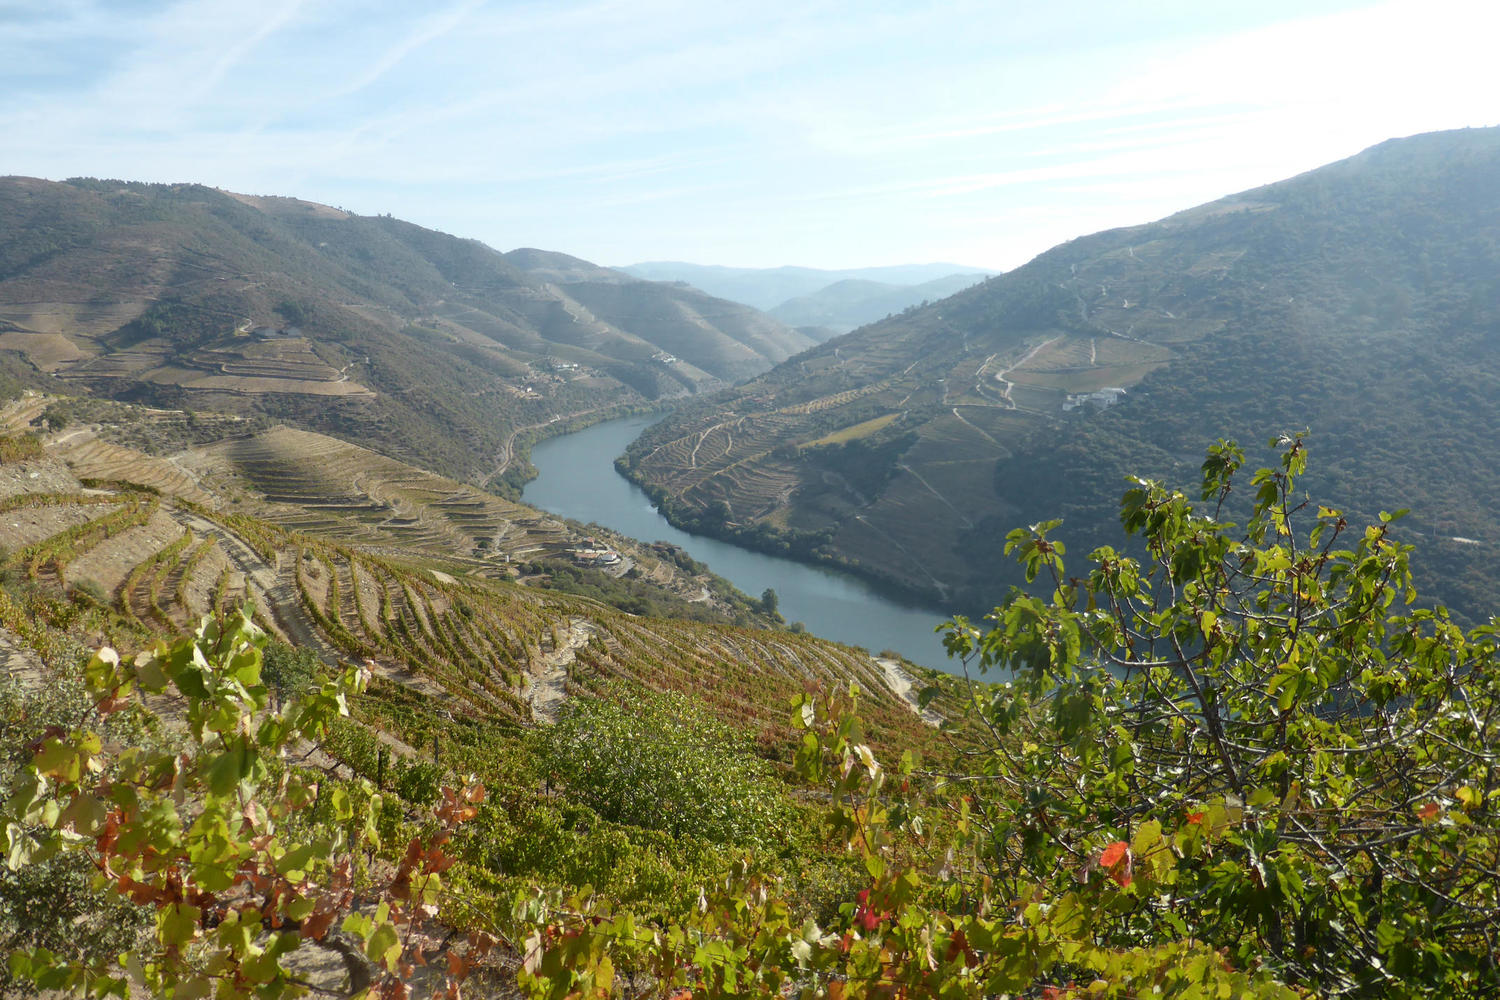 Lovely view over the River Douro and its vineyards